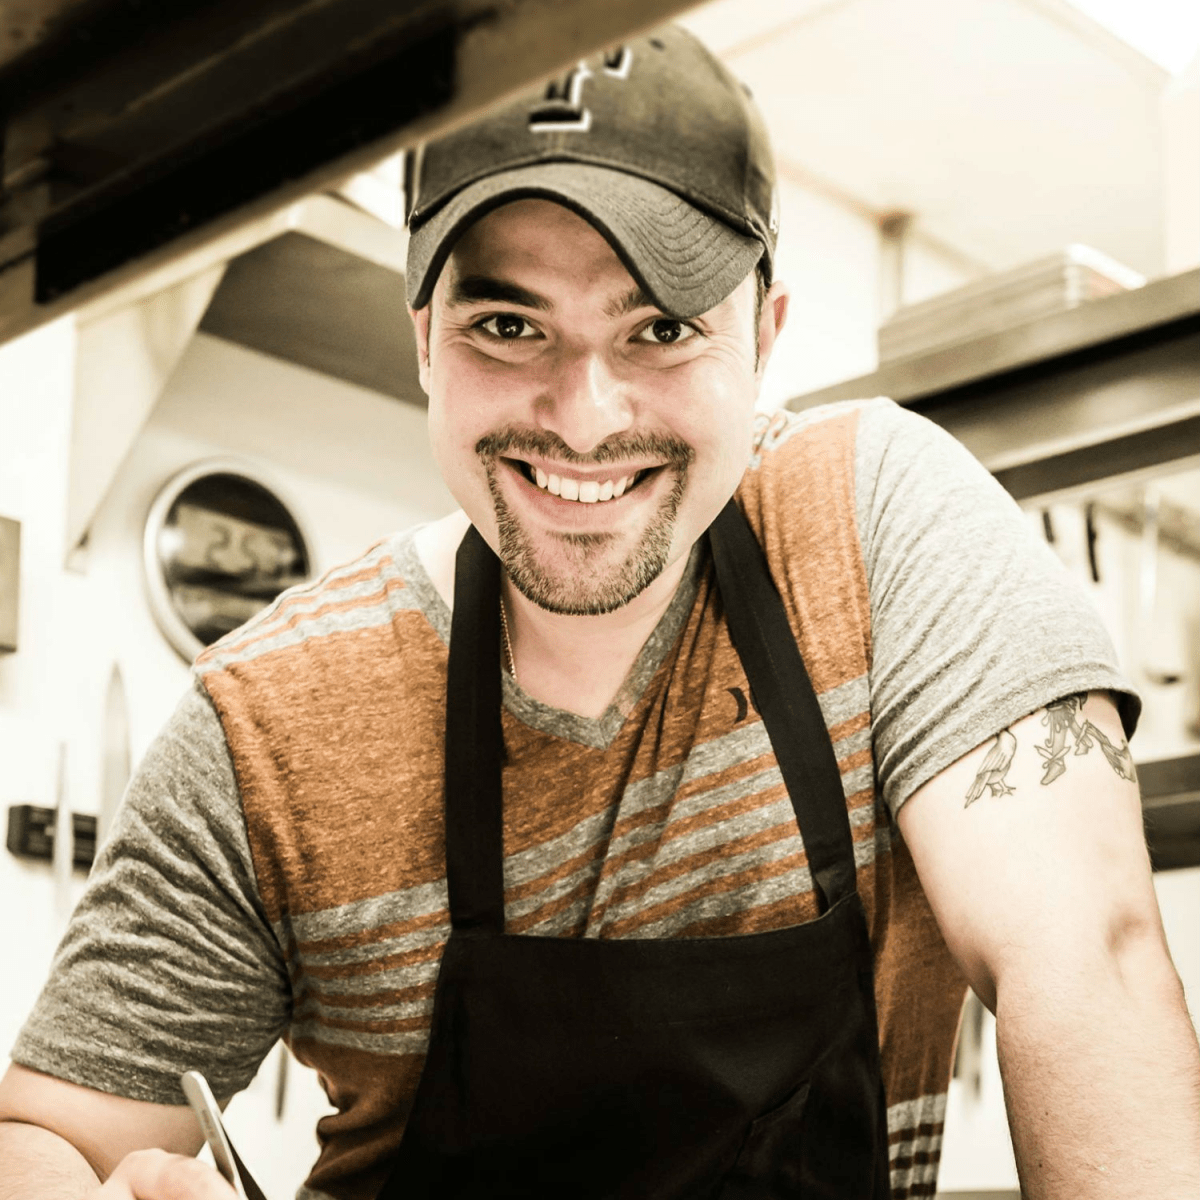 Omar Flores of Casa Rubia in Dallas